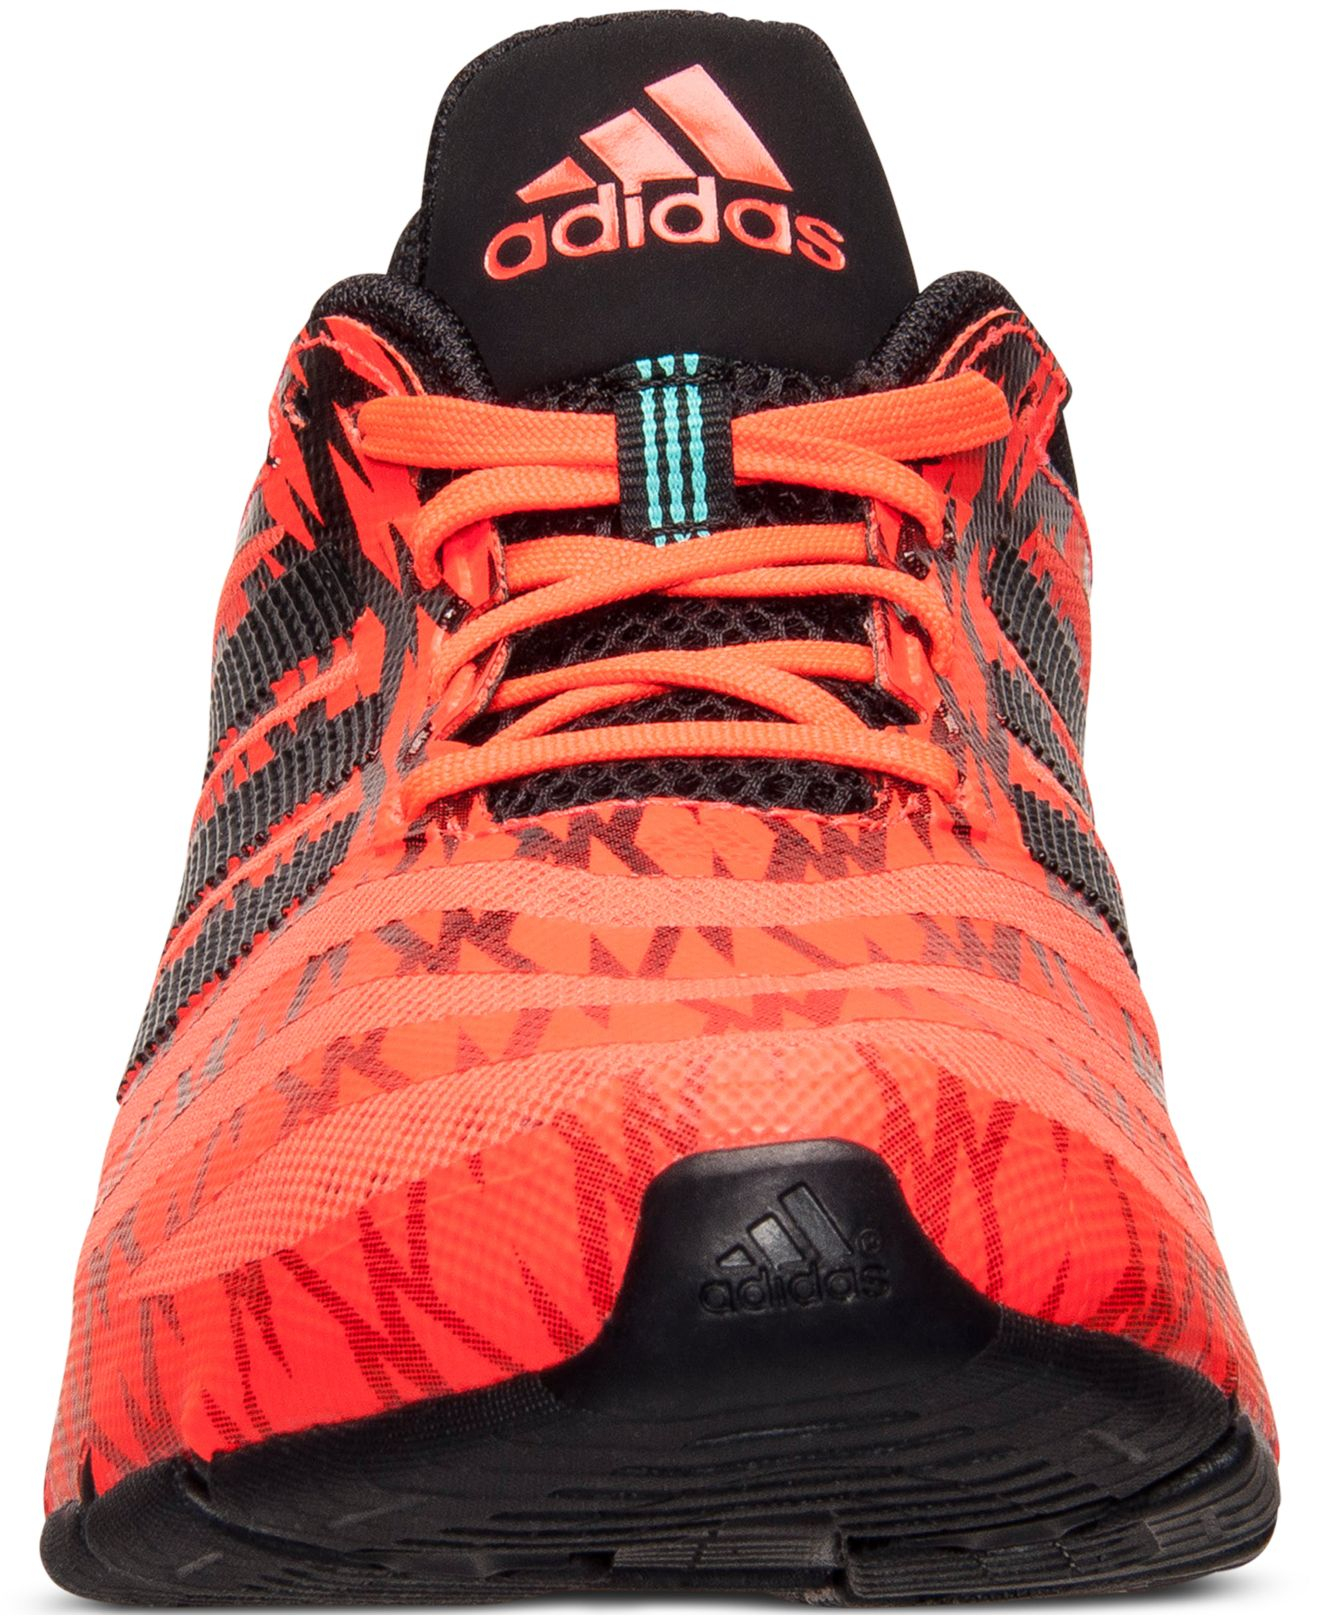 premium selection e6f74 7a90b Adidas Red Men's Springblade Ignite Running Sneakers From Finish Line for  men